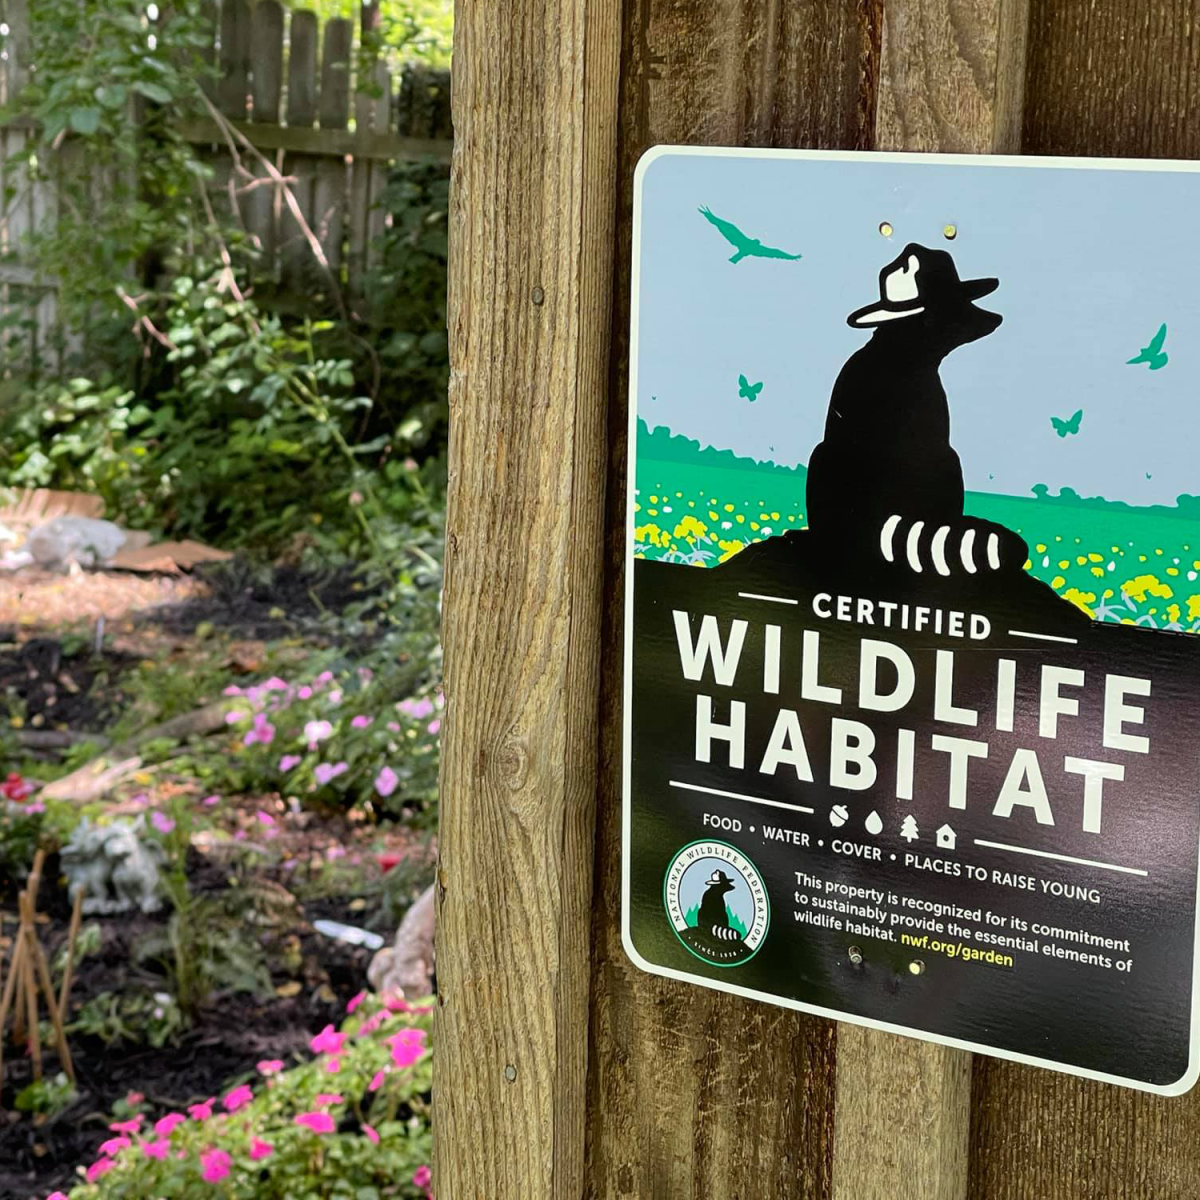 Show your commitment to helping wildlife by proudly displaying your Certified Wildlife Habitat sign in your garden or yard.